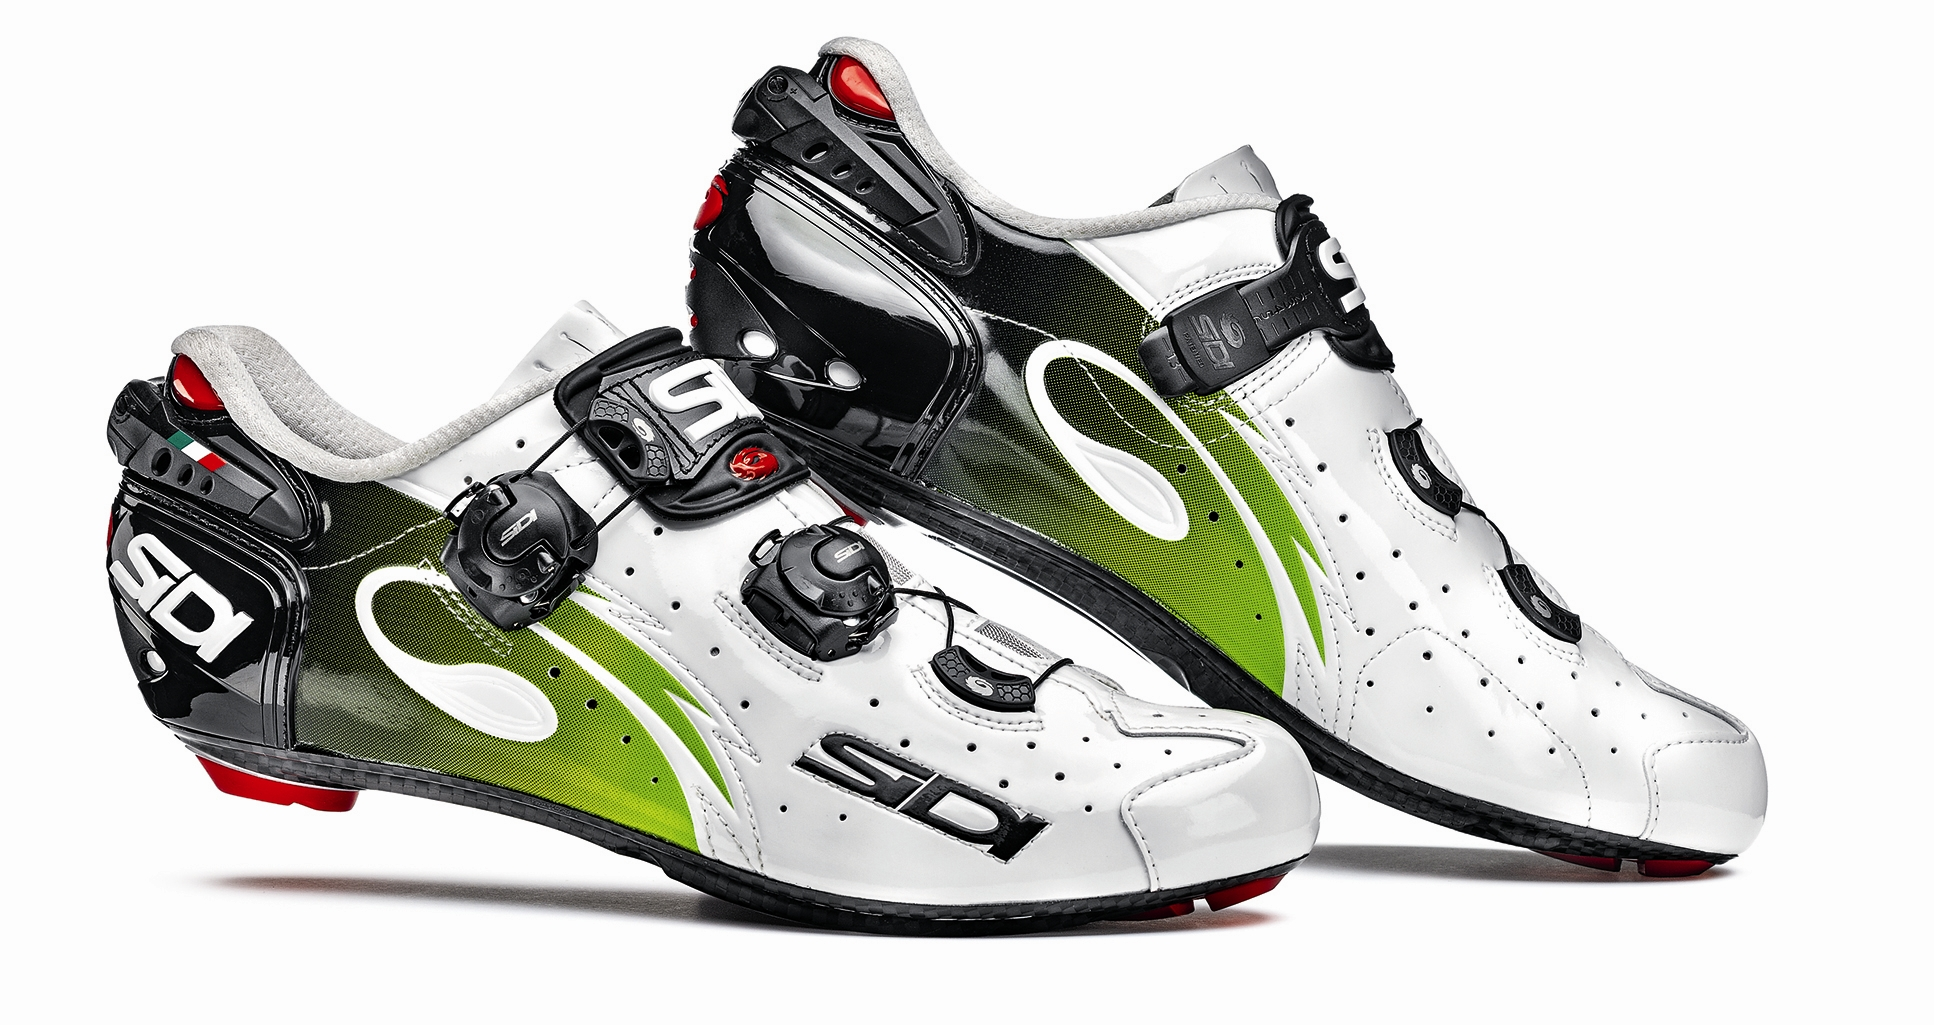 Sidi Wire Cannondale Edition